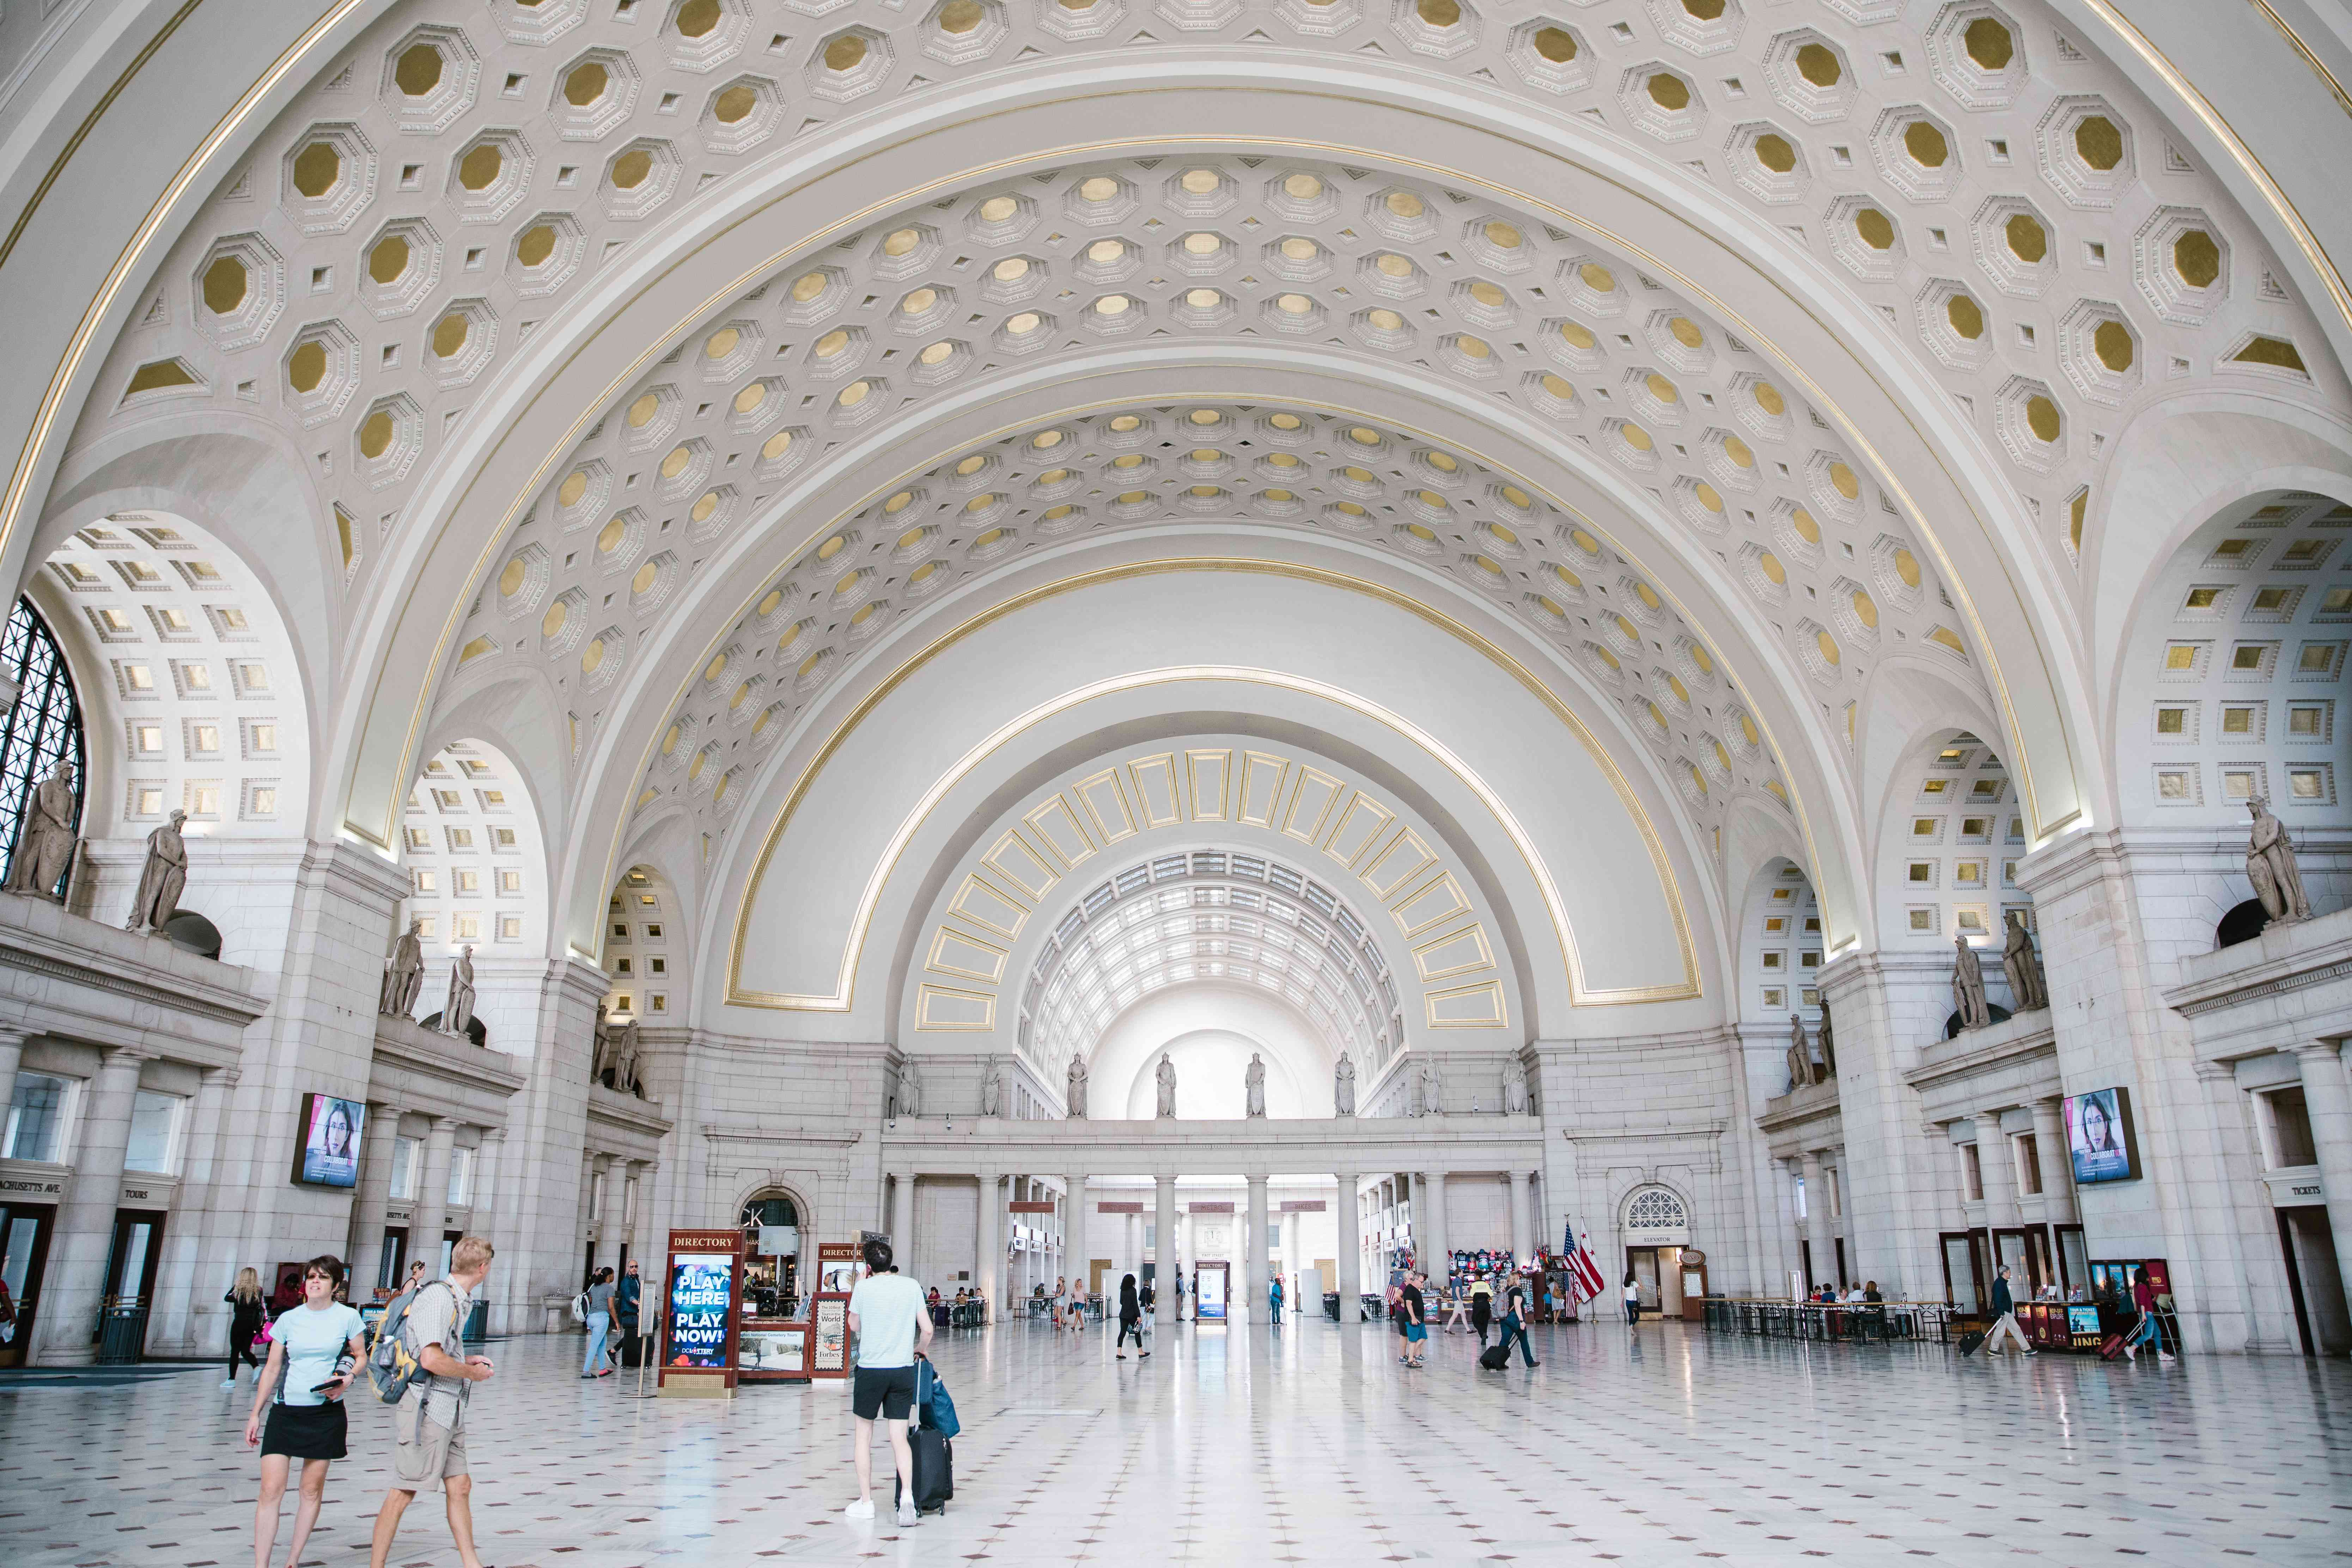 The main arched corridor of Union Station